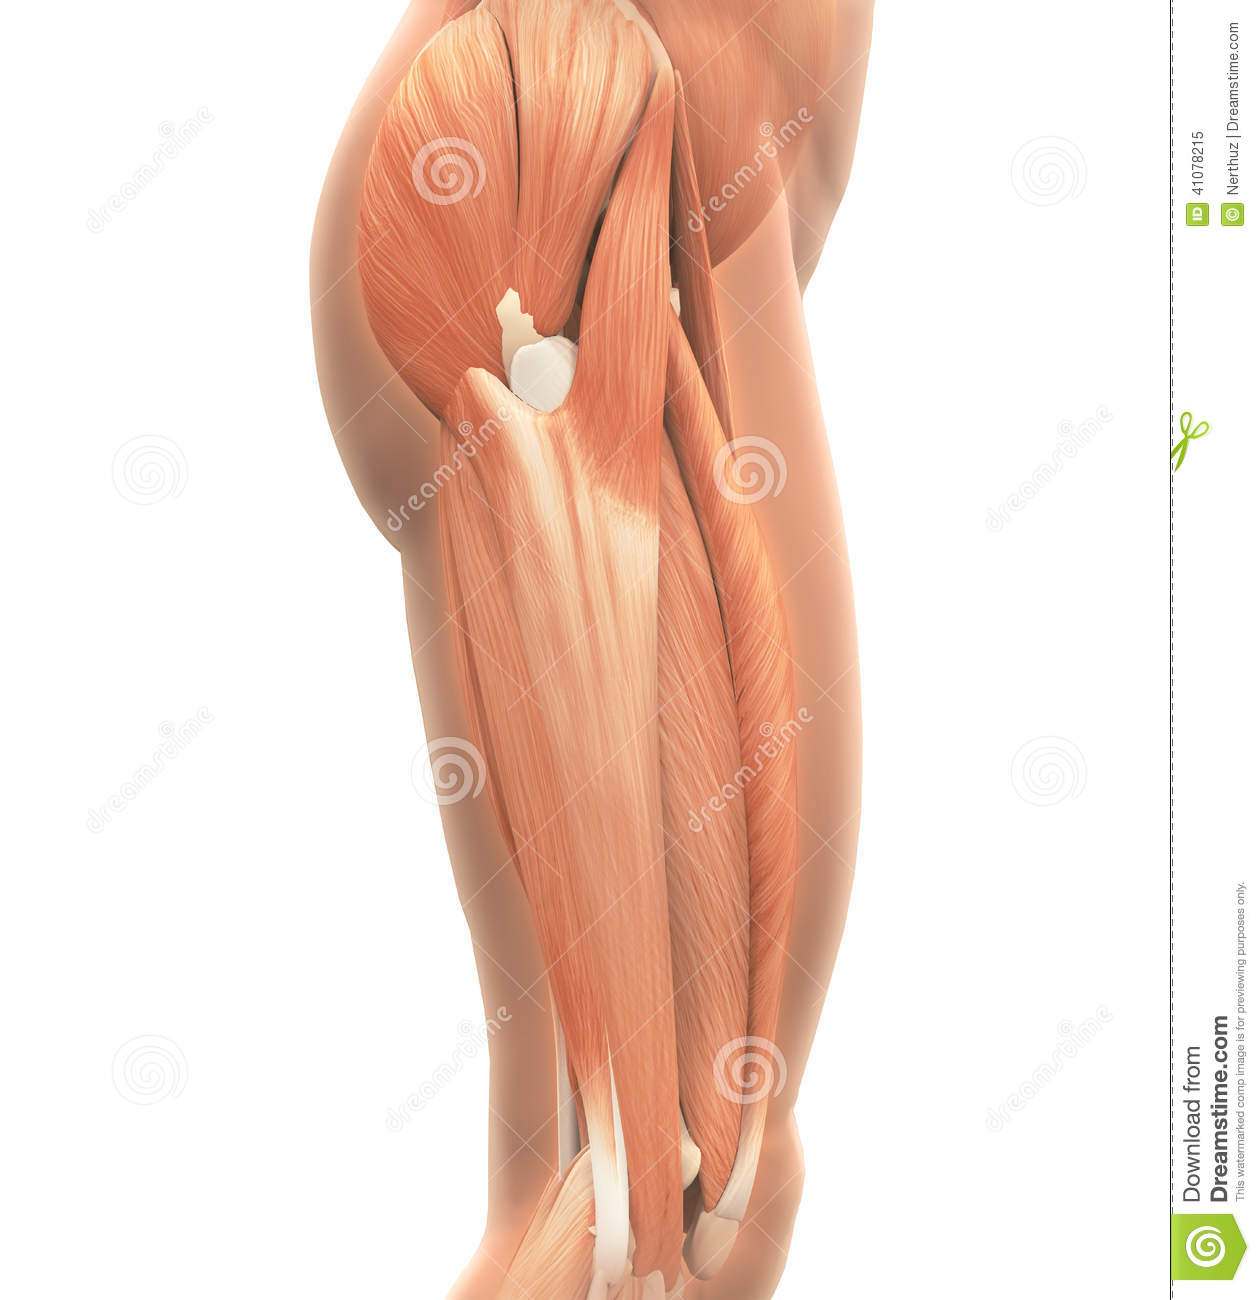 Upper Legs Muscles Anatomy Stock Illustration Illustration Of